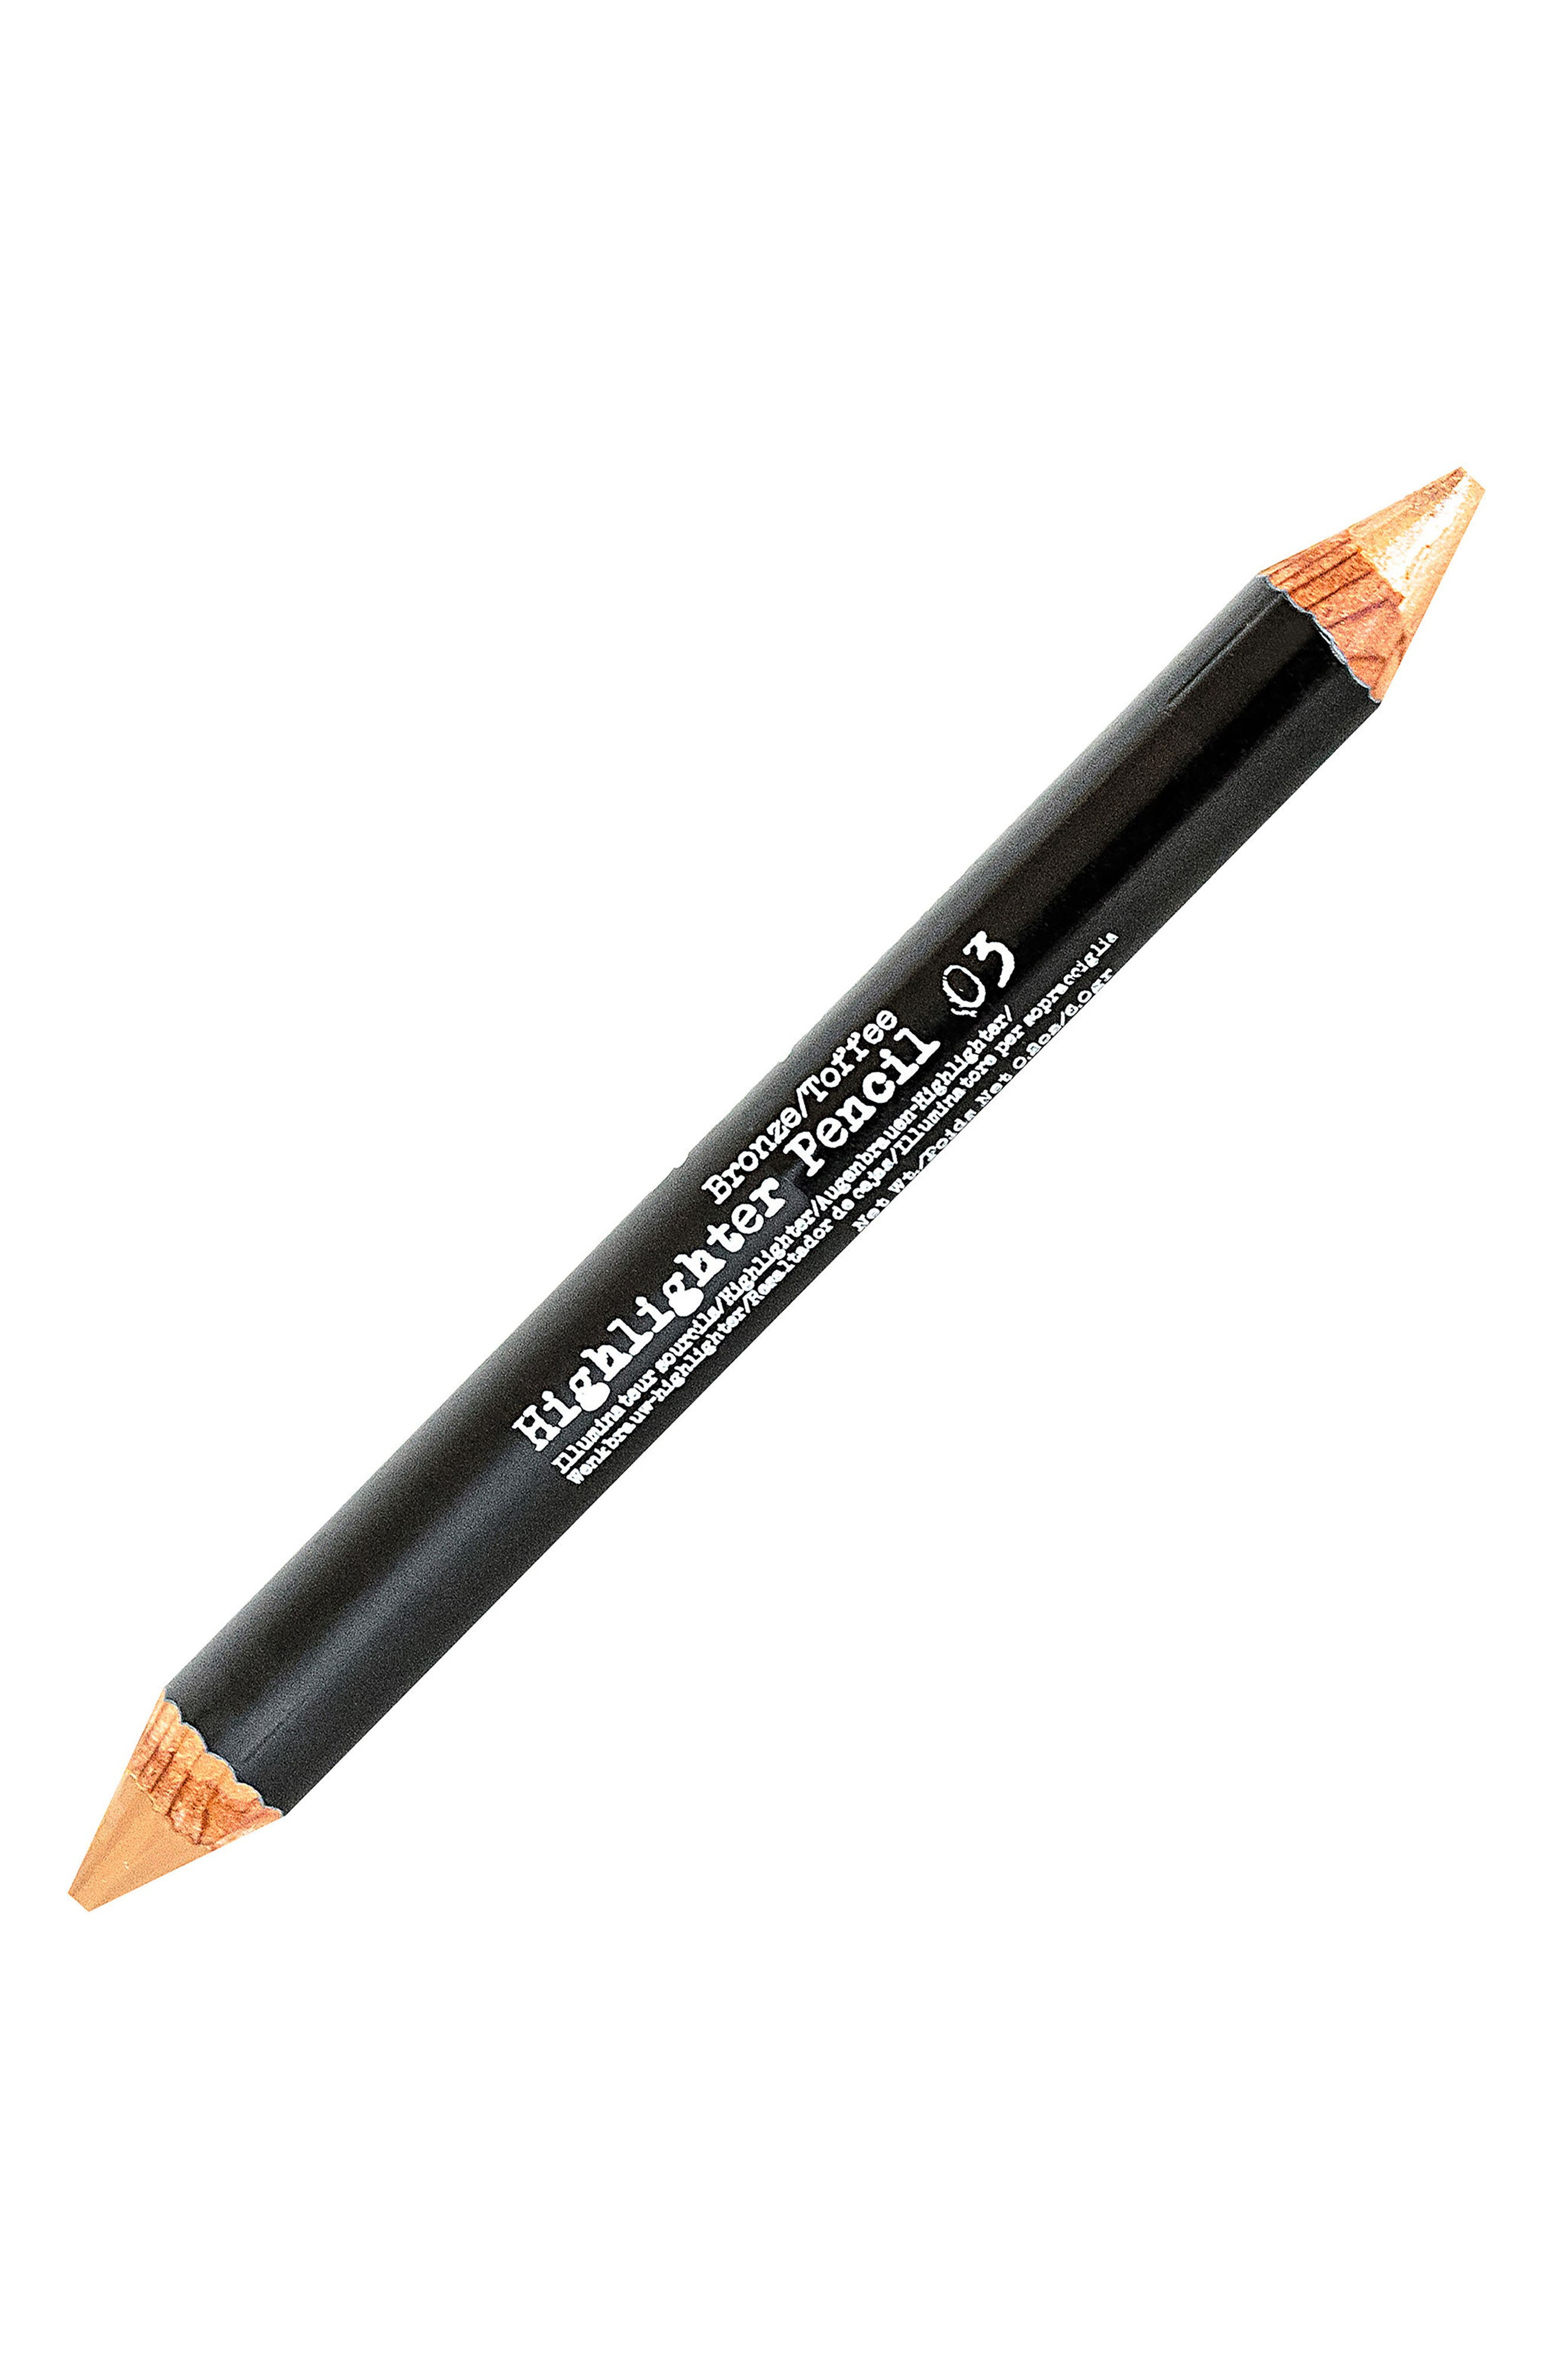 Highlighter Pencil,                             Main thumbnail 1, color,                             03 BRONZE/ TOFFEE